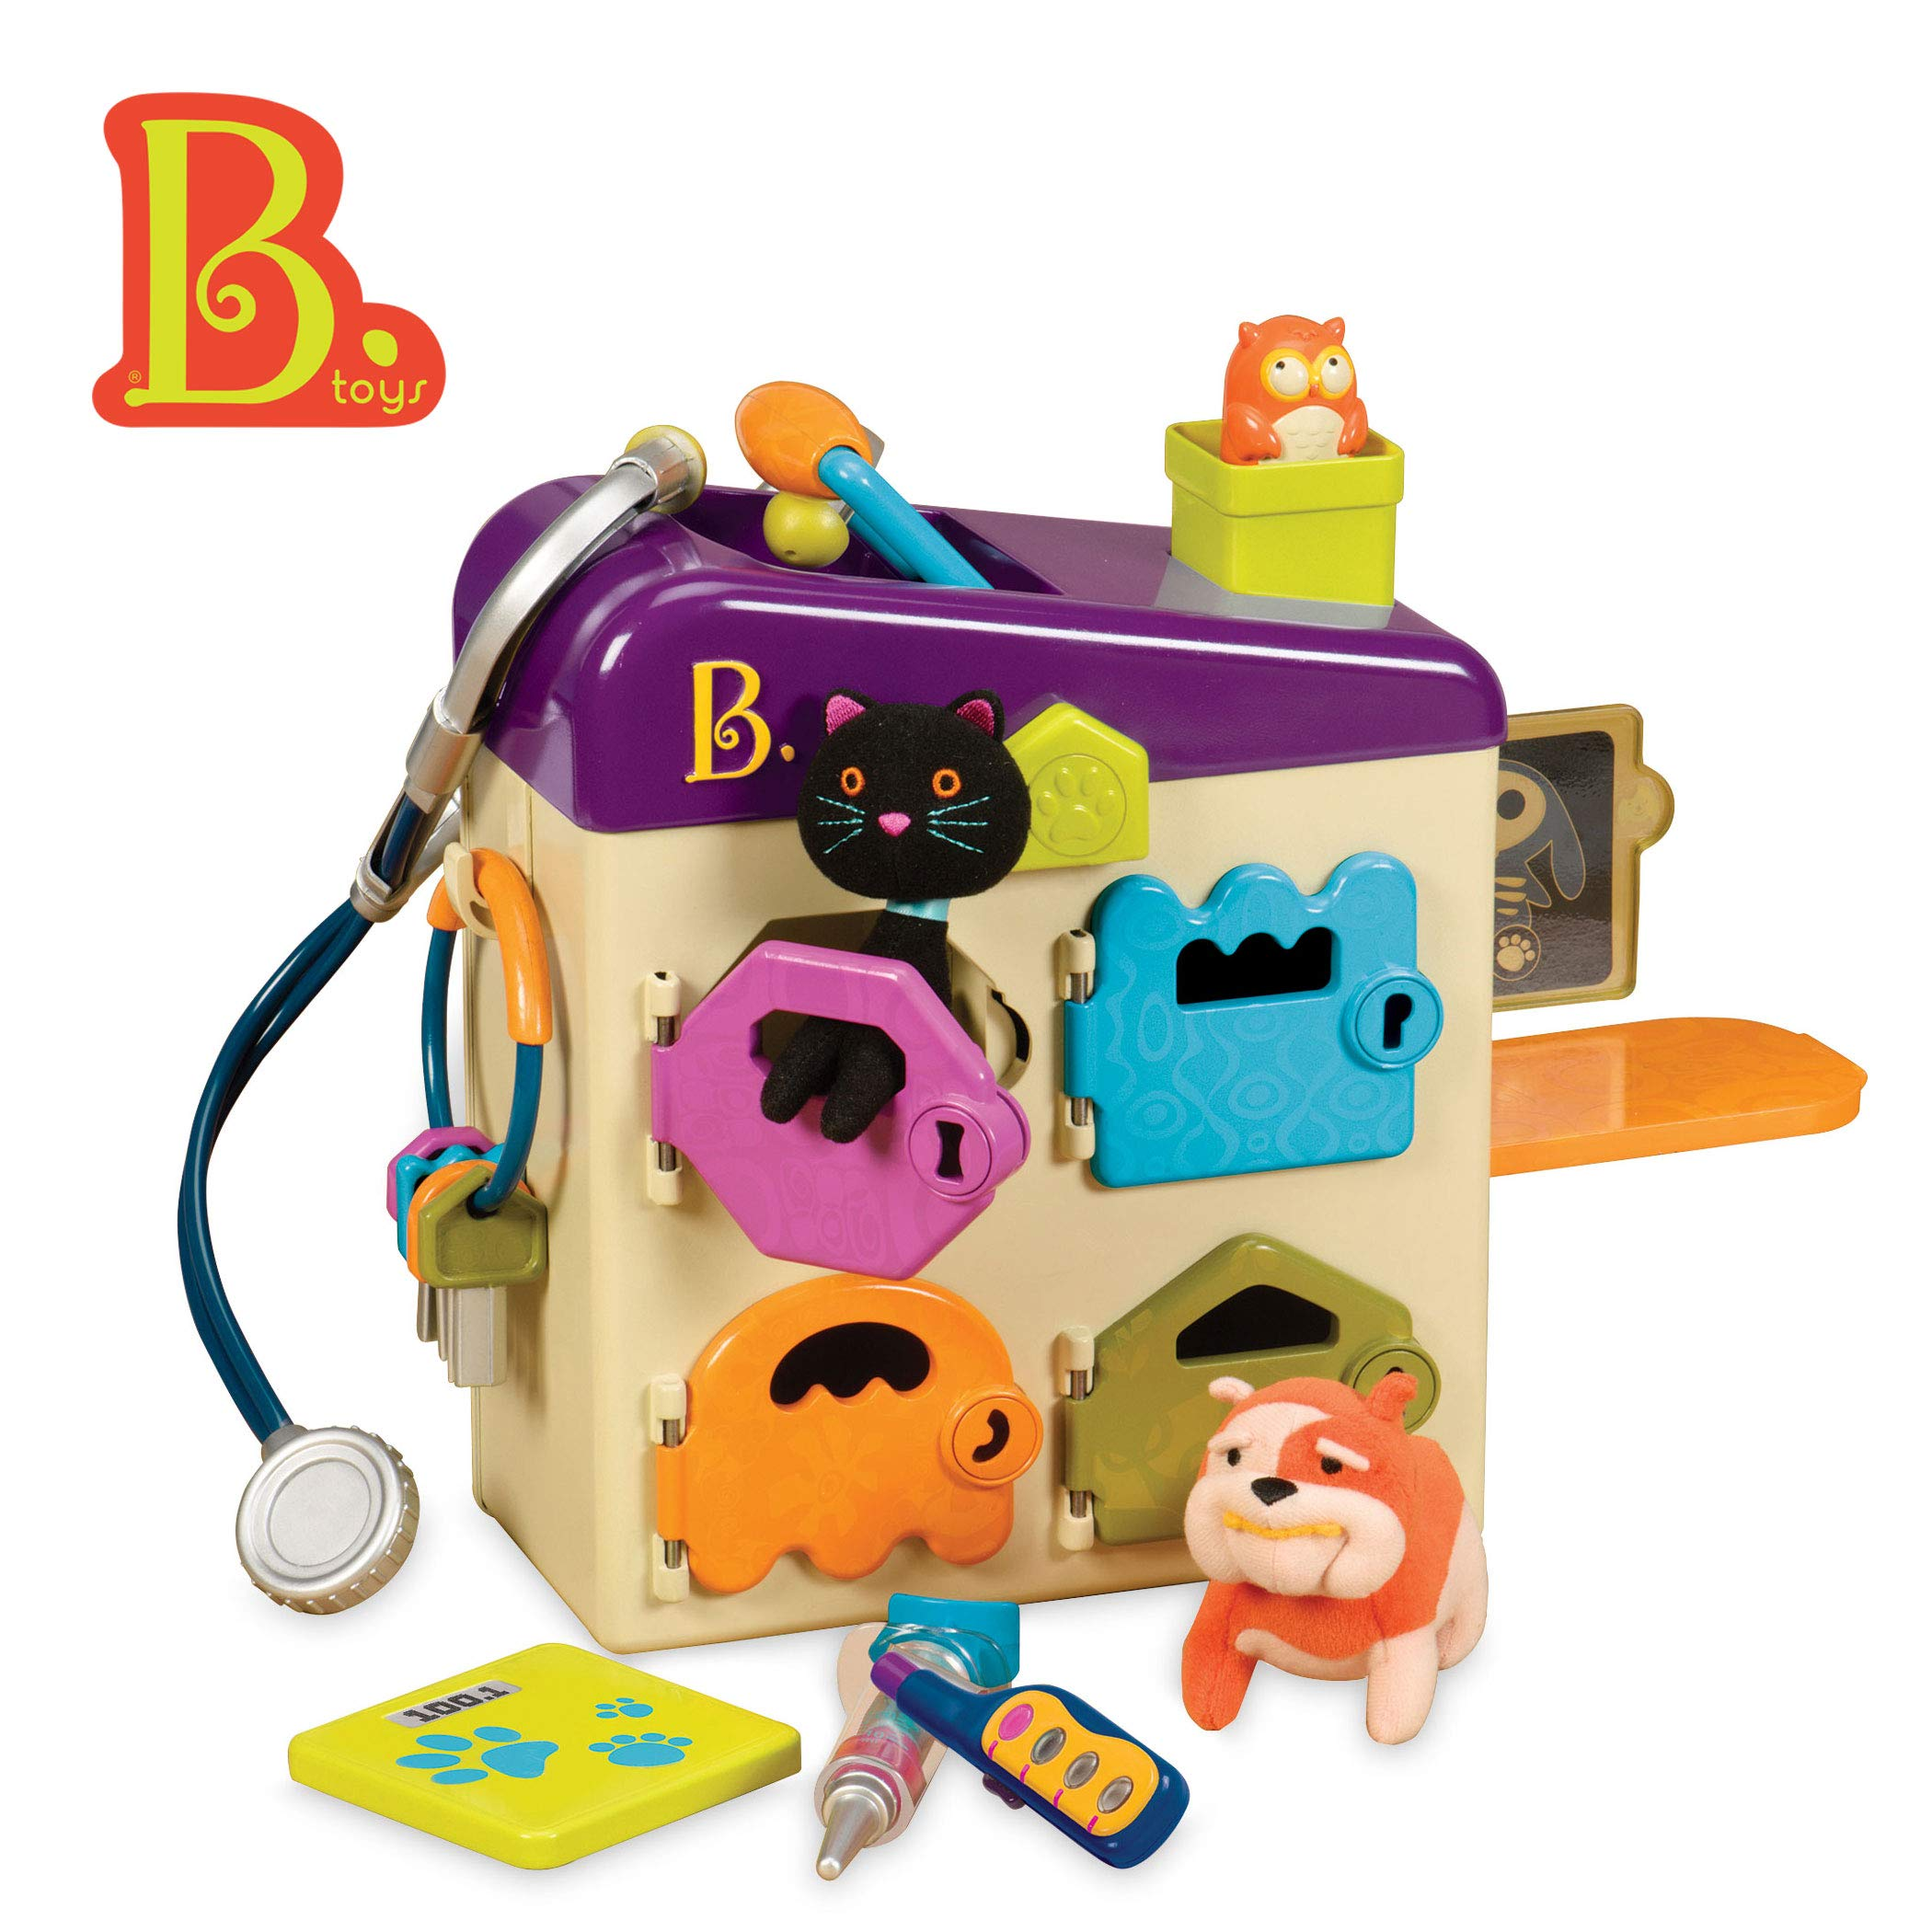 B. toys by Battat - B. Pet Vet Toy - Doctor Kit for Kids Pretend Play (8 pieces) by B. toys by Battat